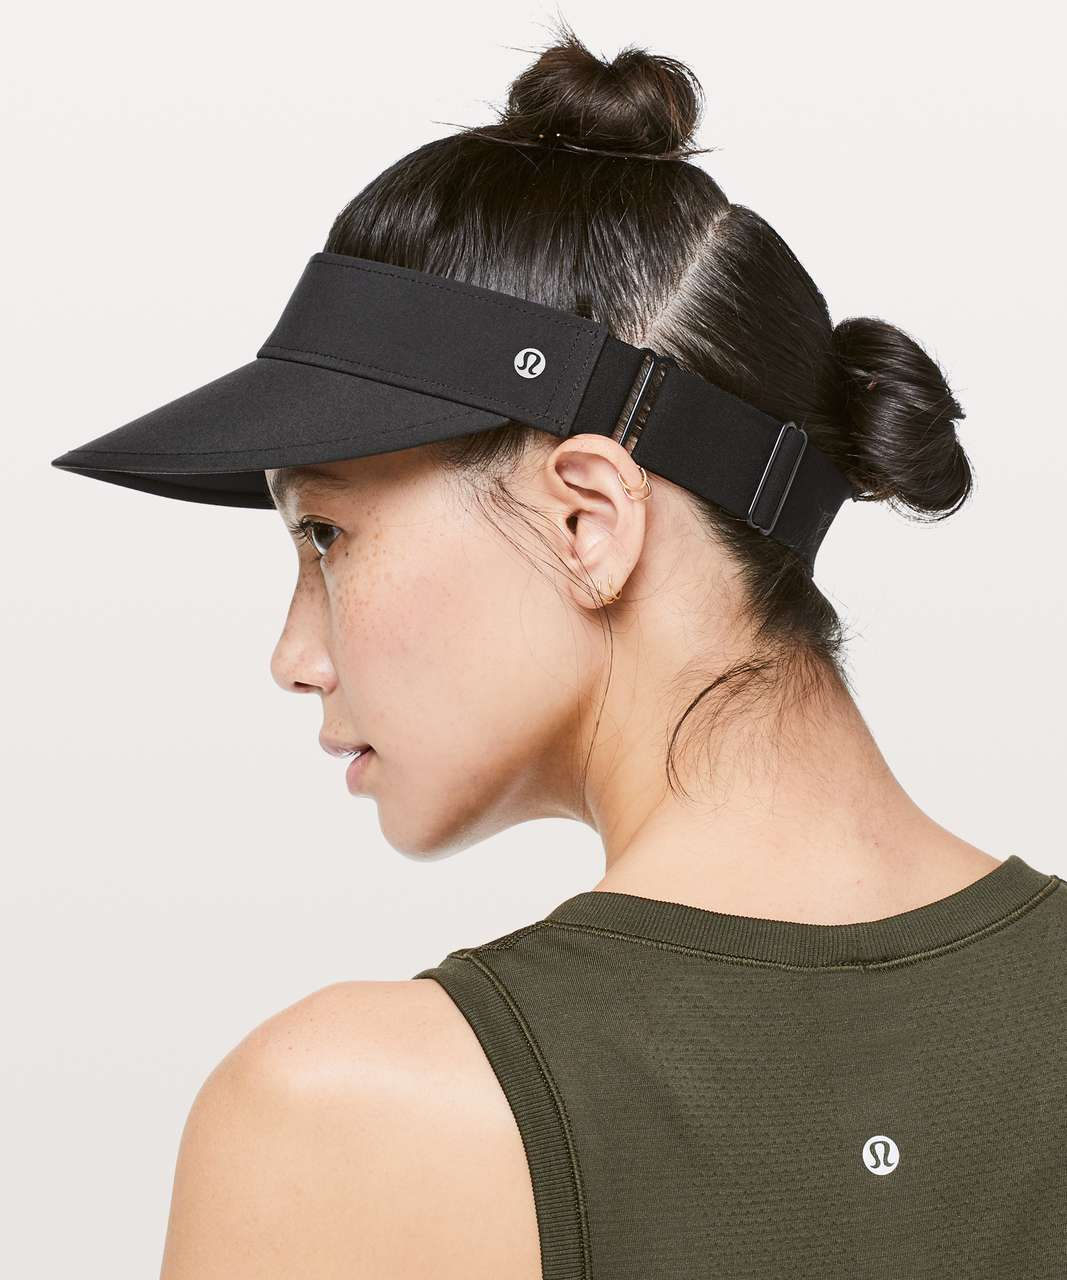 Lululemon Fast Paced Run Visor - Black